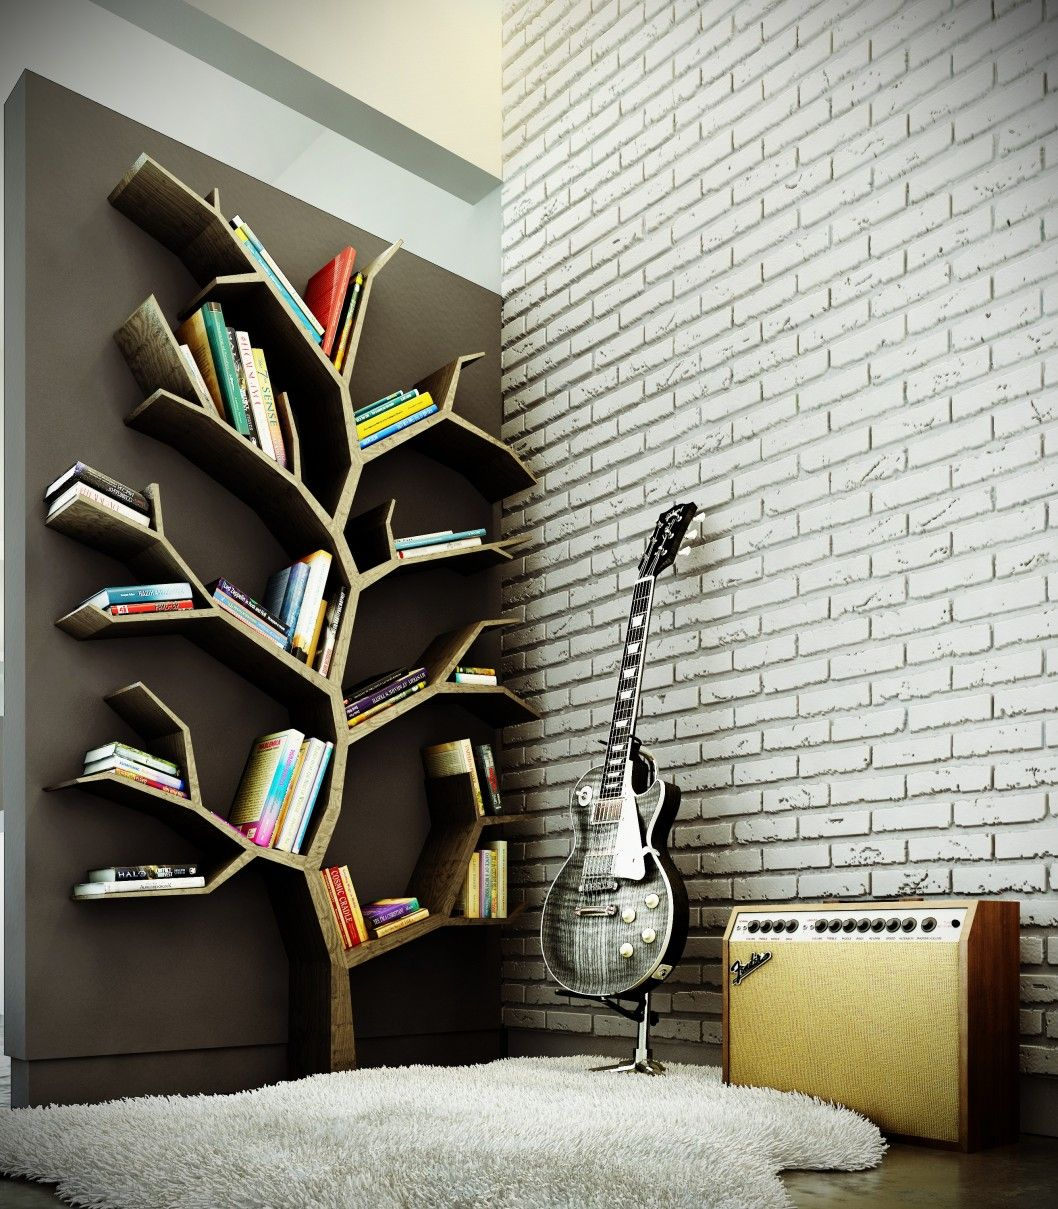 Wooden shelves tree tree branch bookshelf diy tree shaped shelf - Inspirations Ideas Tree Bookcase Design In The Room Where Playing Guitar With Natural Color